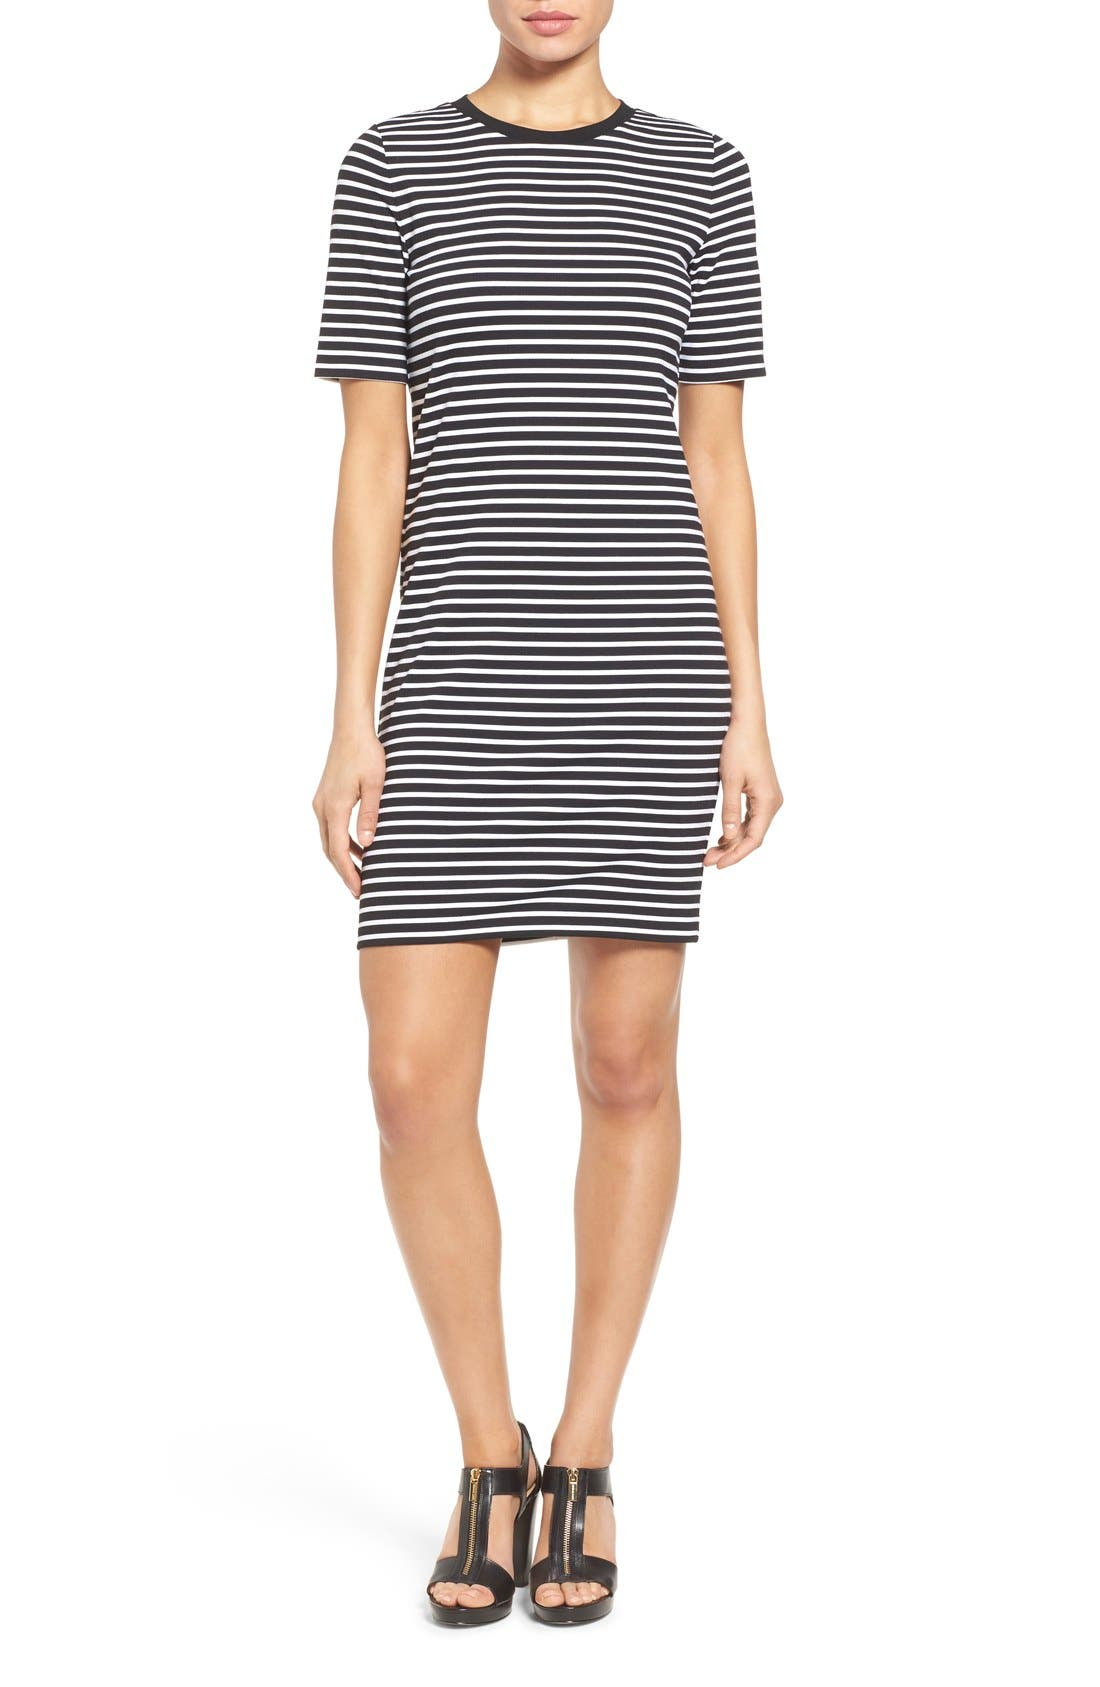 Alternate Image 1 Selected - MICHAEL Michael Kors Crewneck T-Shirt Dress (Regular & Petite)